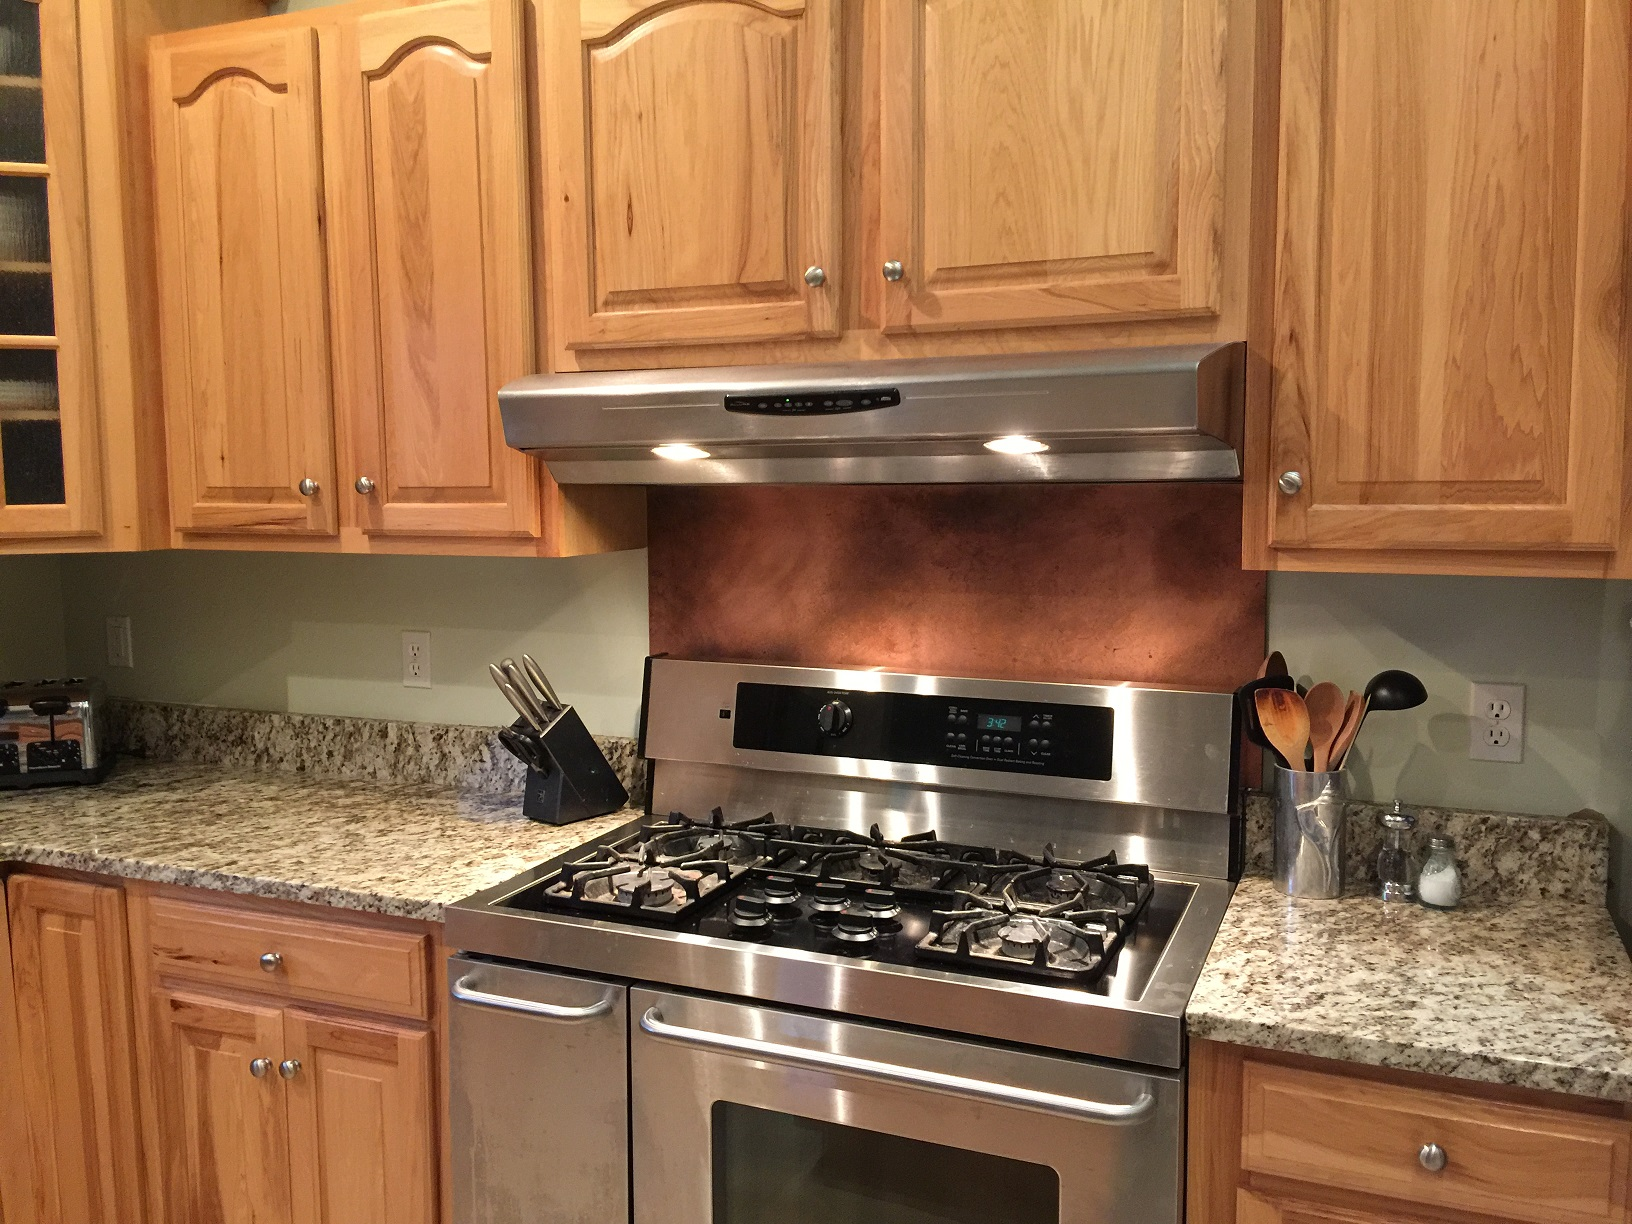 - Copper Backsplash-Rustic Brown